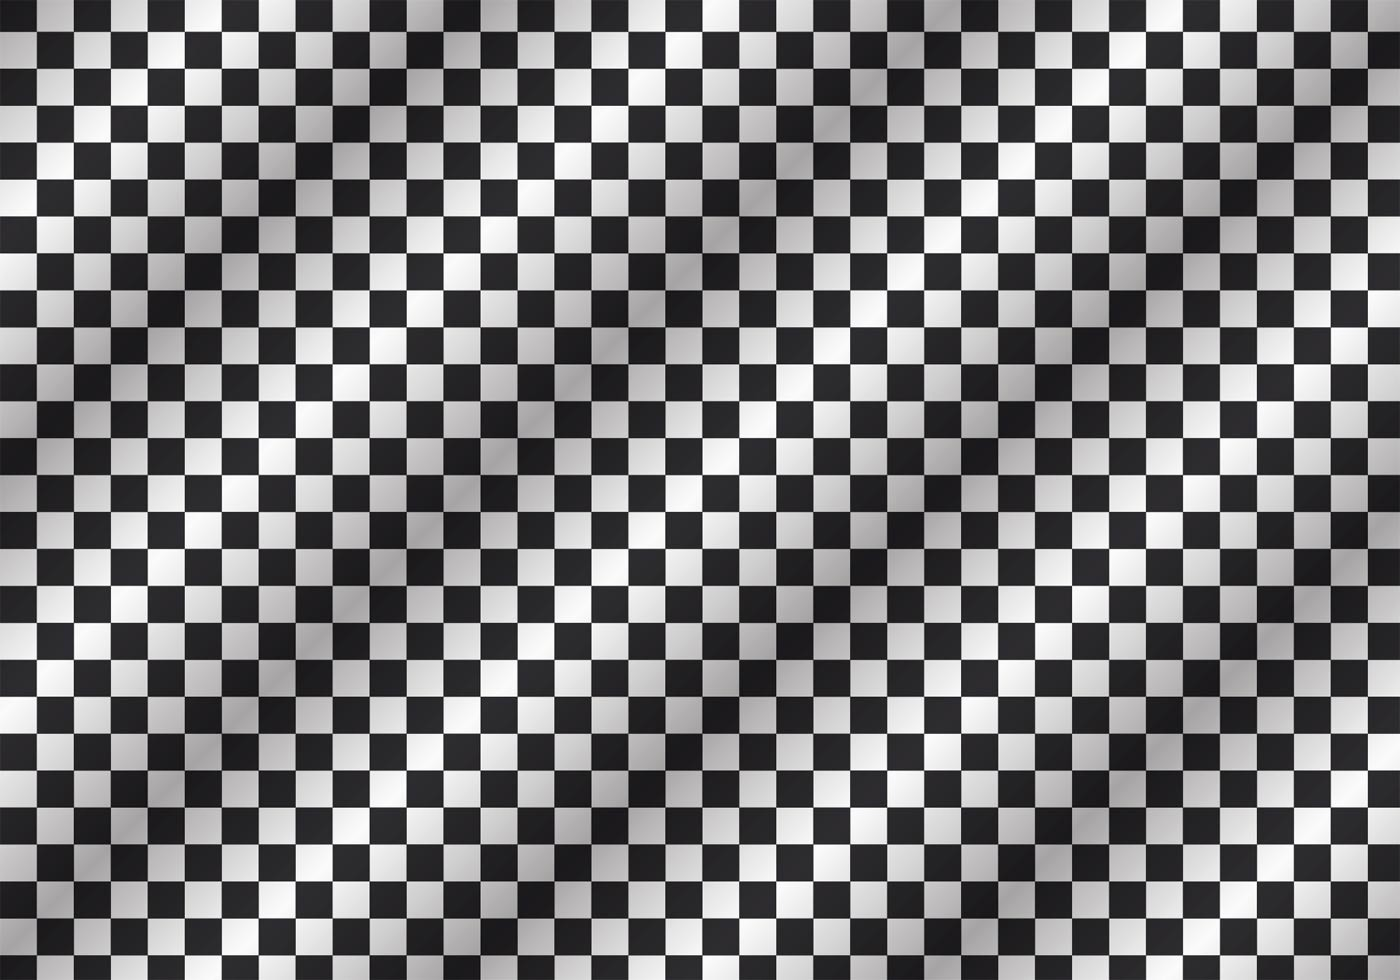 Pictures Of A Checker Board Unique Vector Checkerboard Pattern with Shadow Download Free